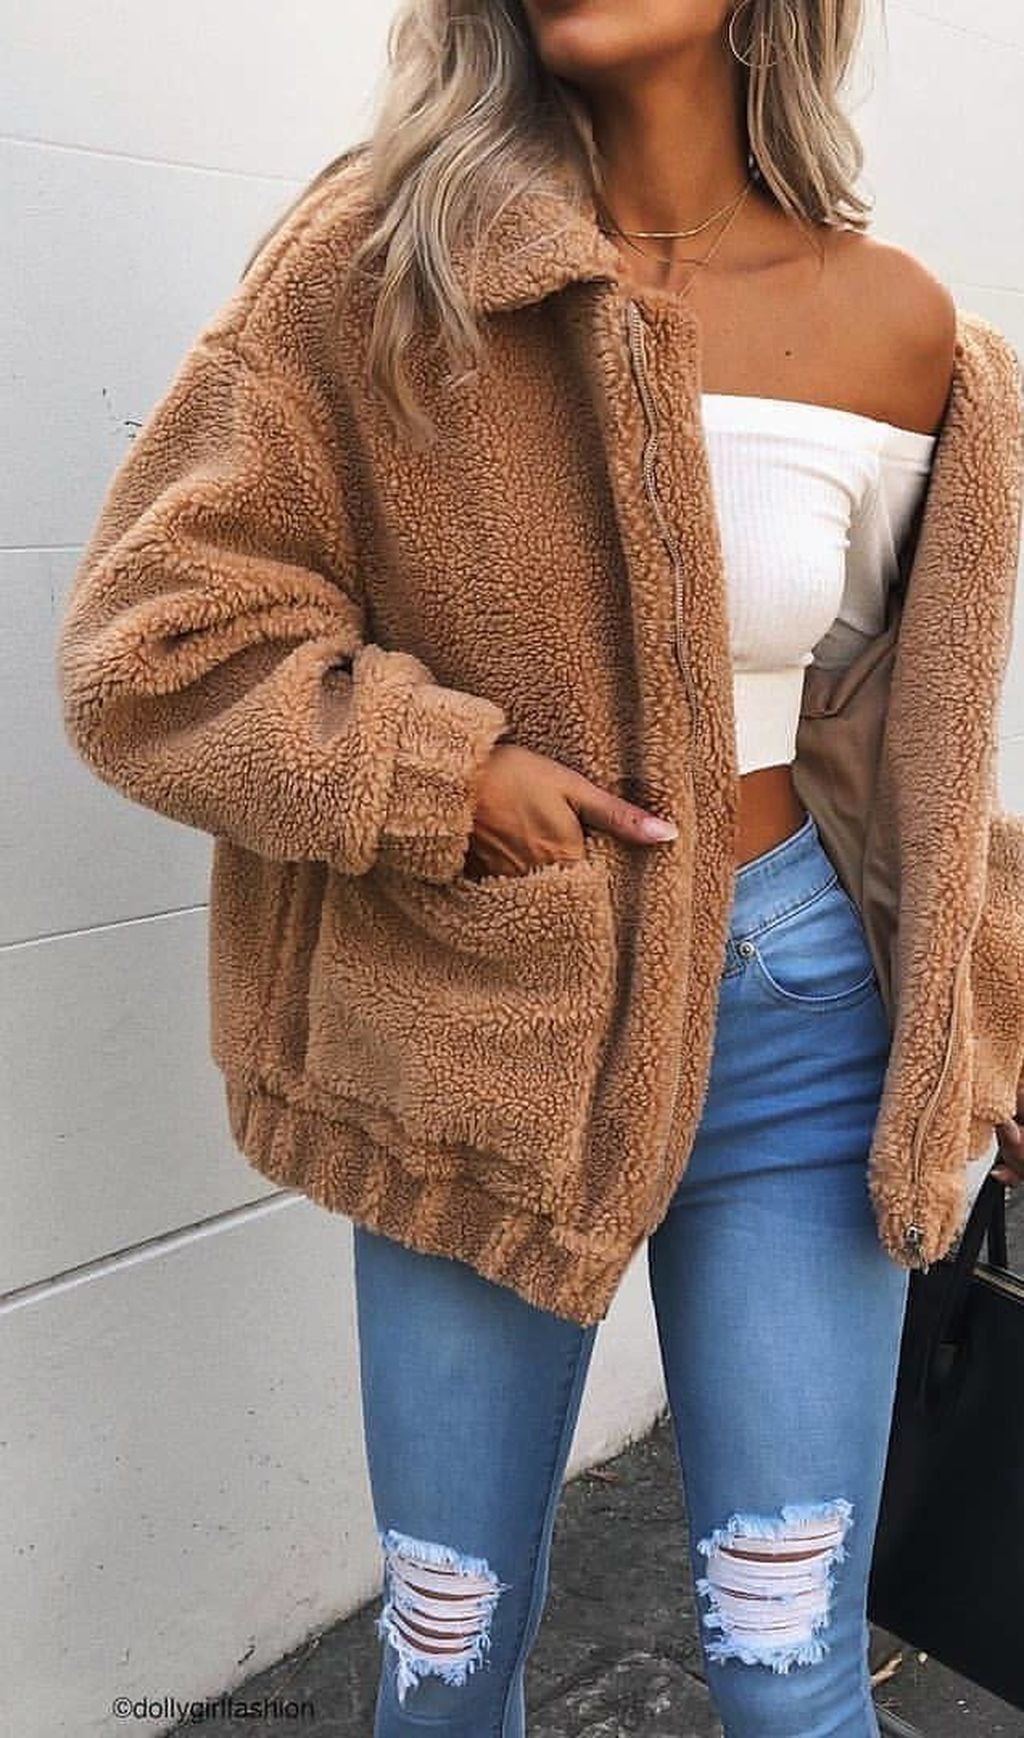 41 Cute Fall Outfits Ideas #outfitinspo